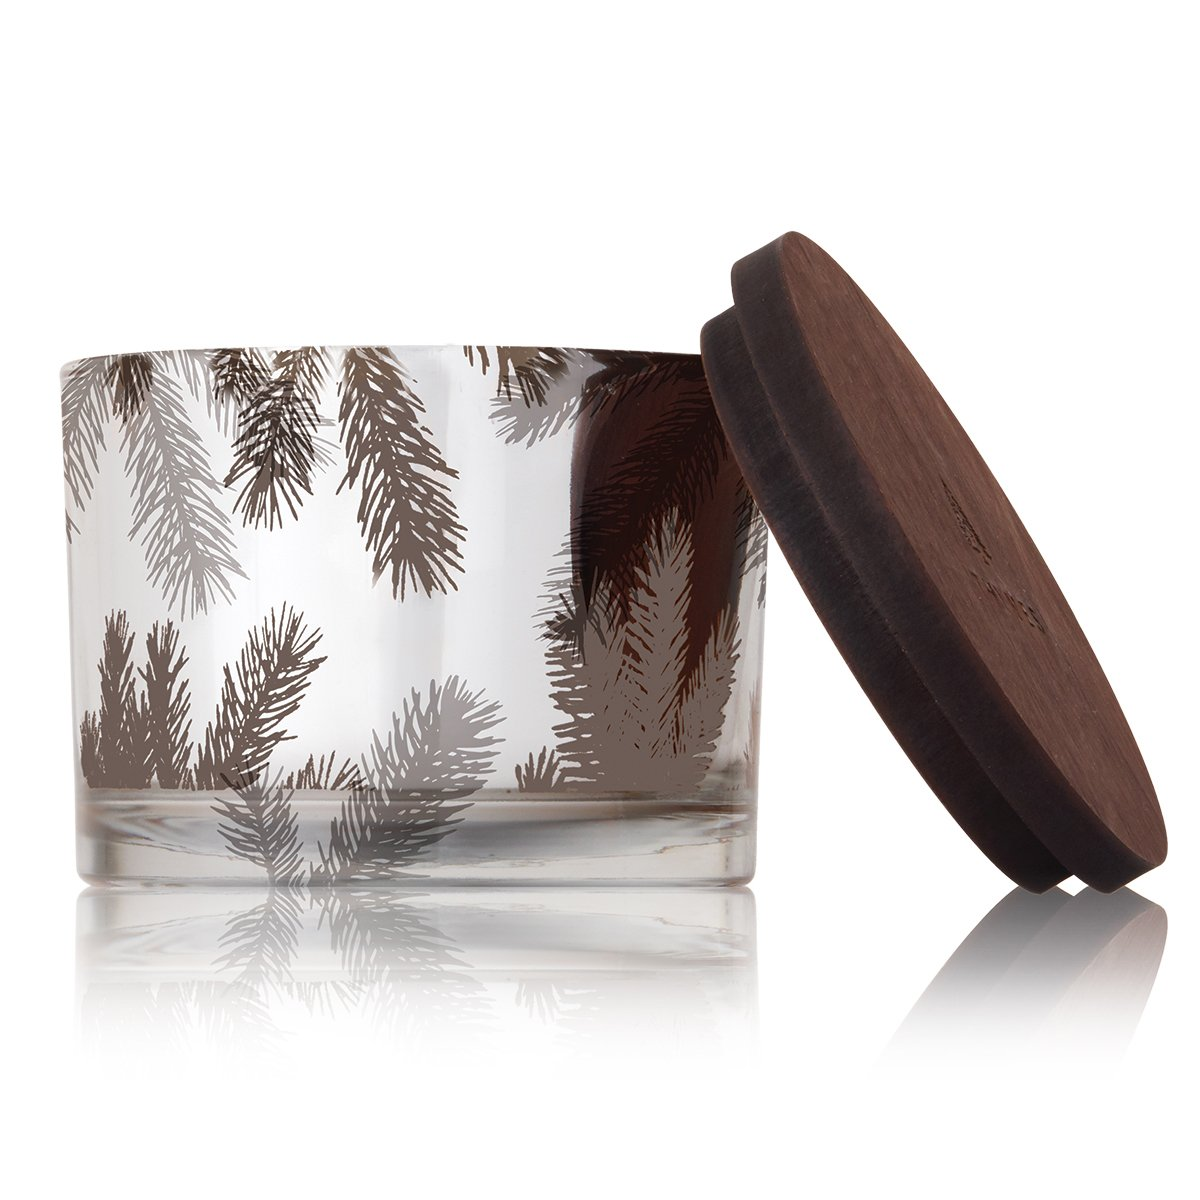 Thymes Frasier Fir Limited Edition 3-Wick Candle